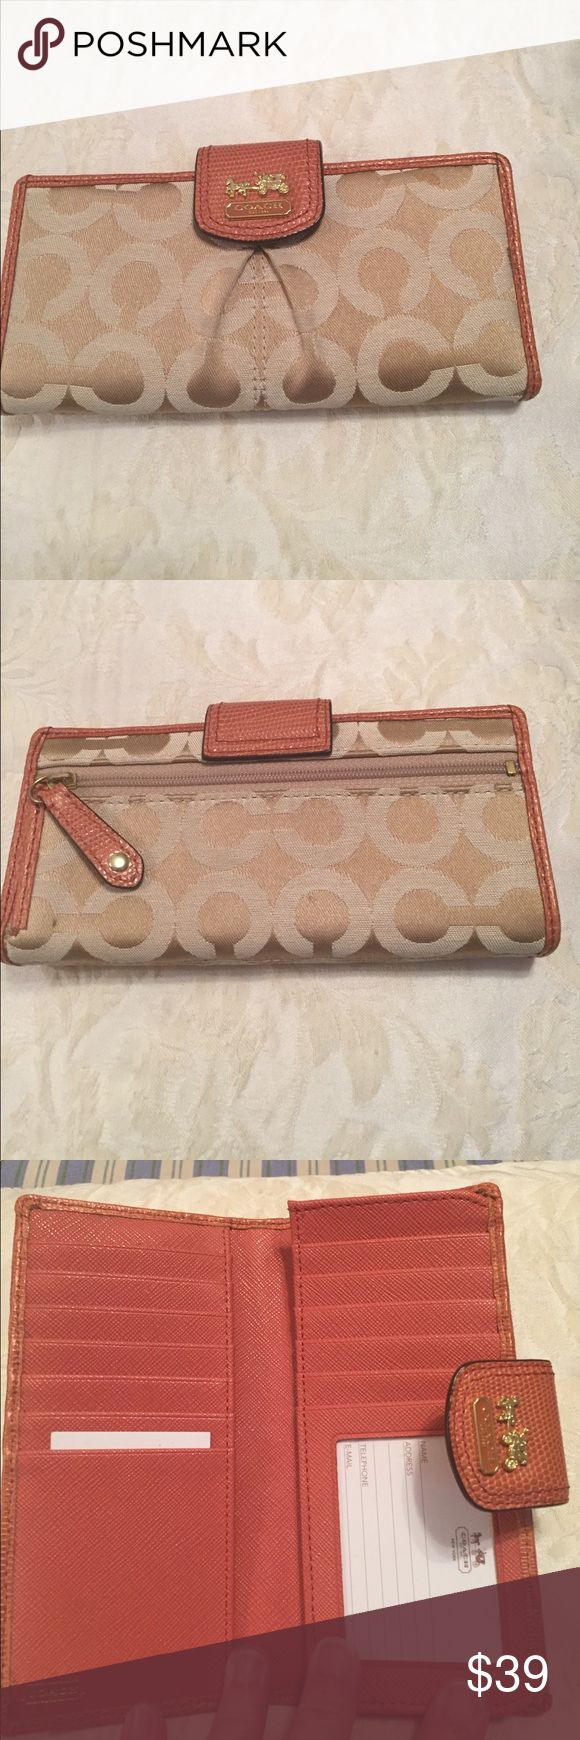 Coach Madison Op Art Sateen Skinny Wallet Preloved Coach Wallet in good condition. Coach Bags Wallets